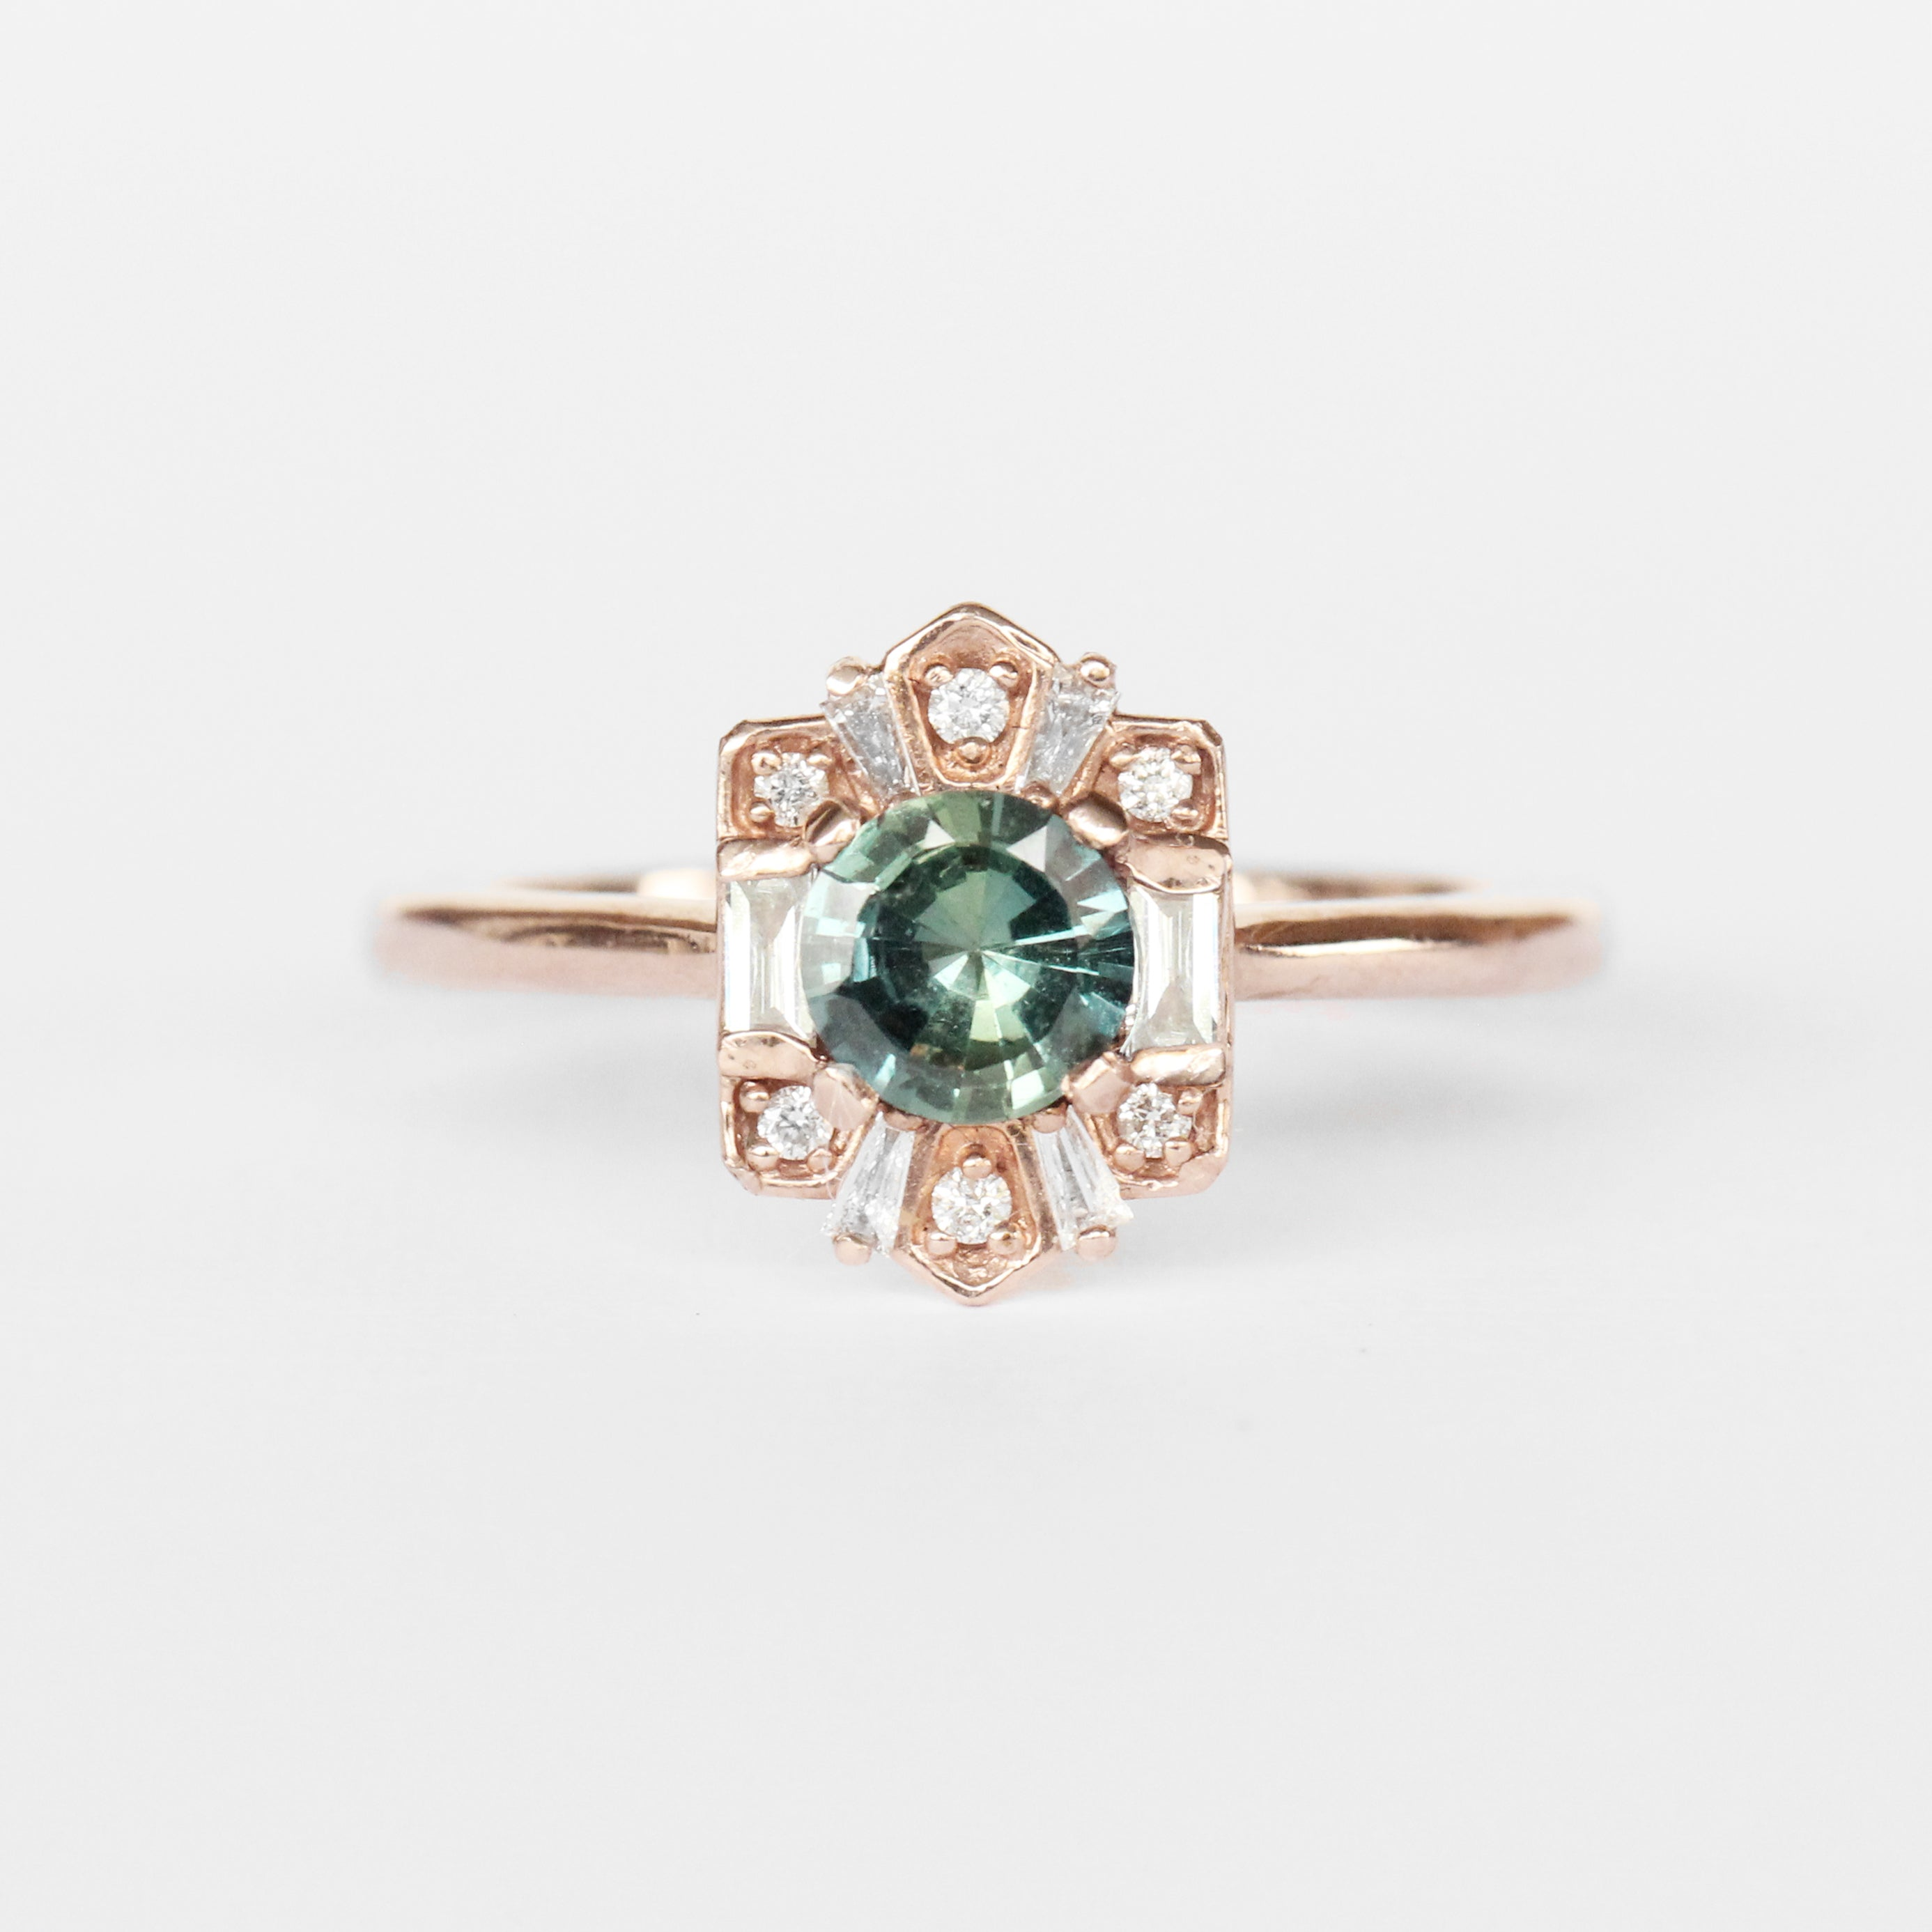 Geraldine Ring with a Peacock Sapphire and Diamond Accents in 10k Rose Gold - Ready to Size and Ship